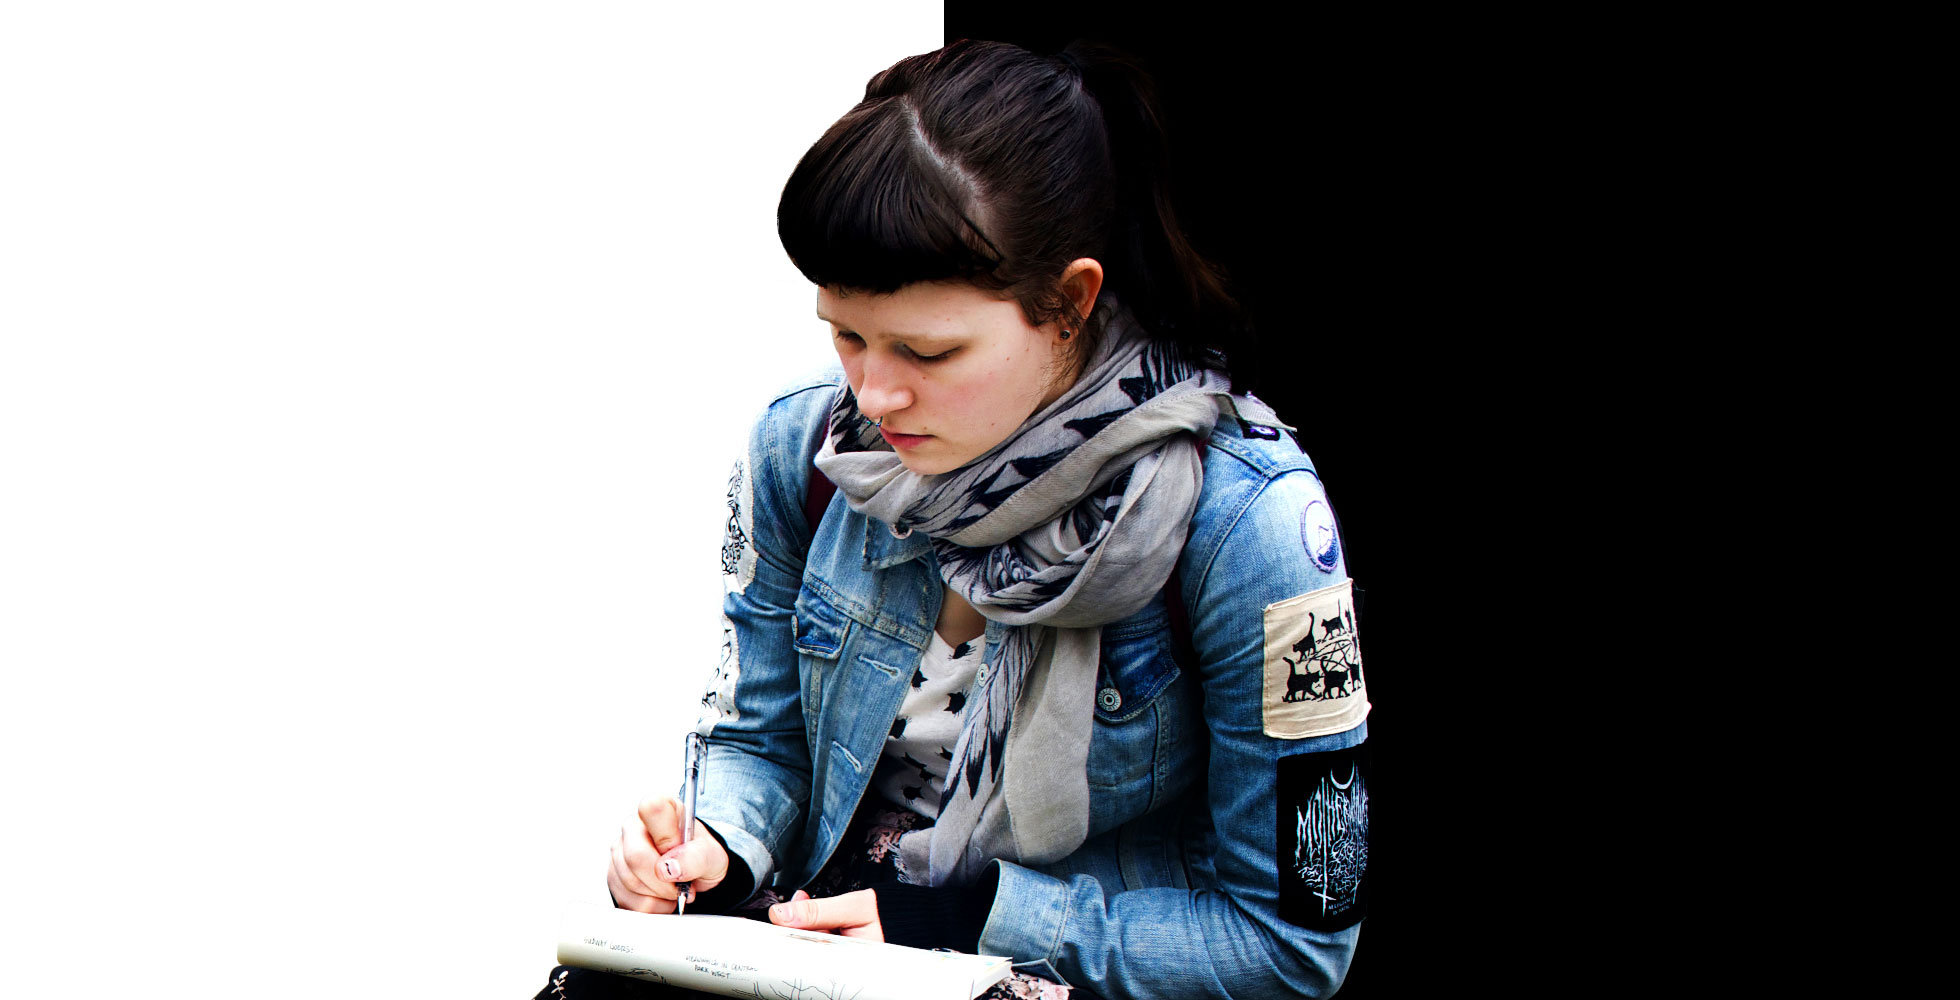 A girl sitting and writting